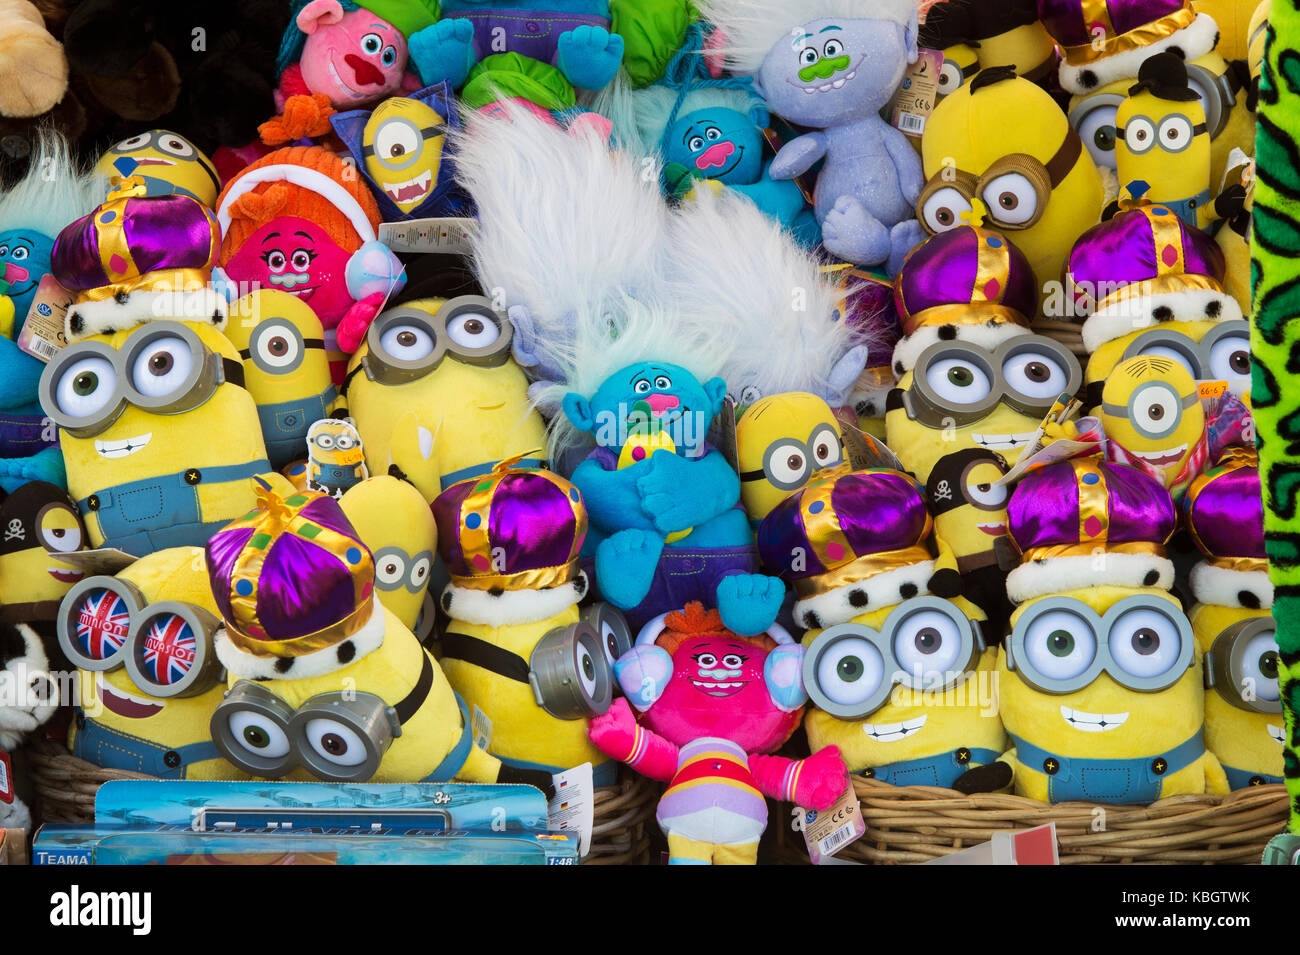 Minions and Trolls toys for sale at an autumn festival. UK Stock Photo